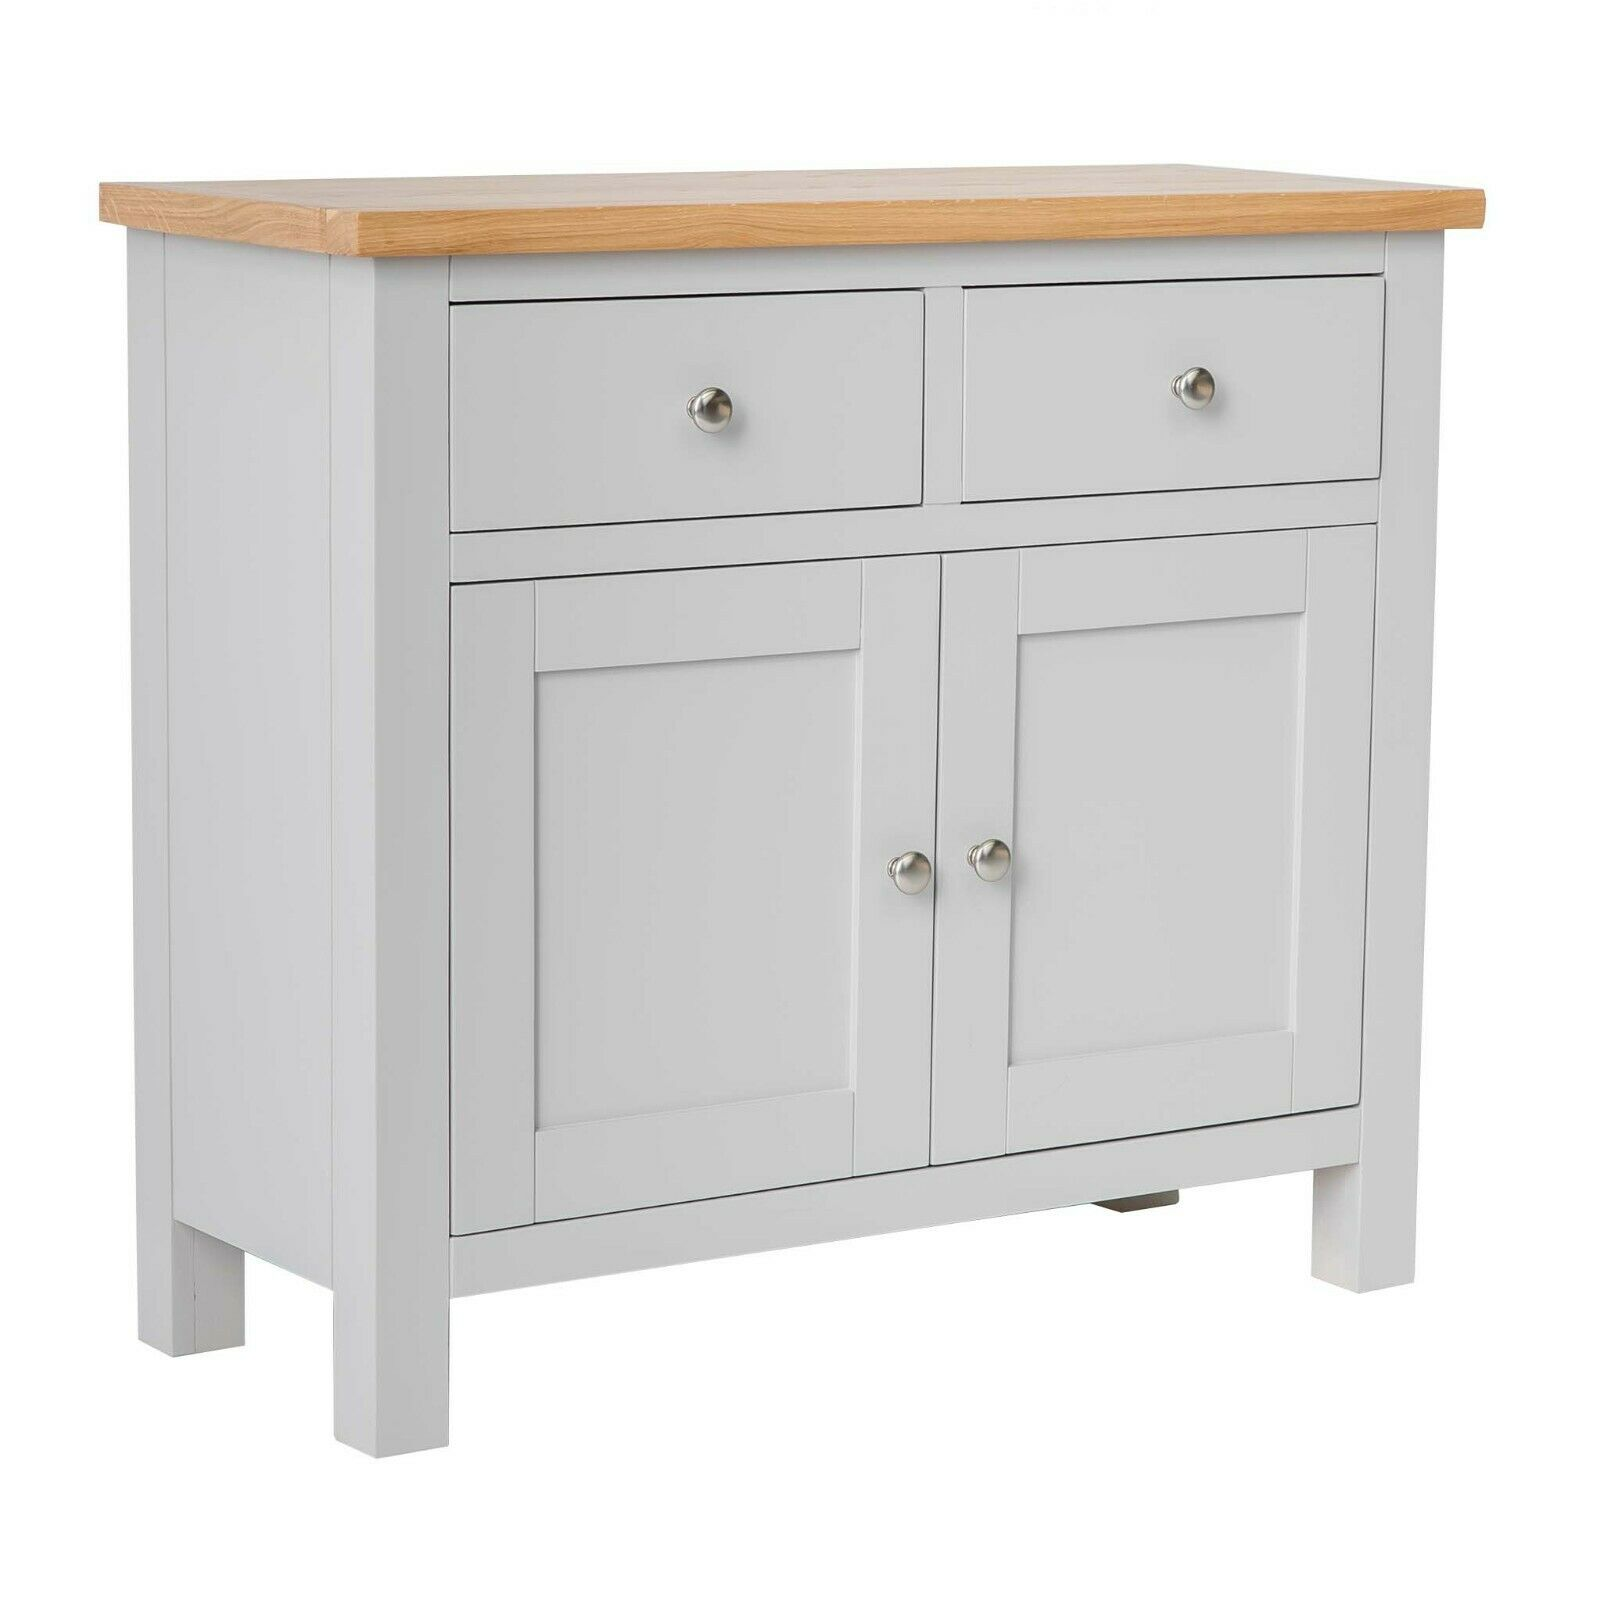 Farrow grey sideboard with two cupboards stone painted for Painted buffet sideboard